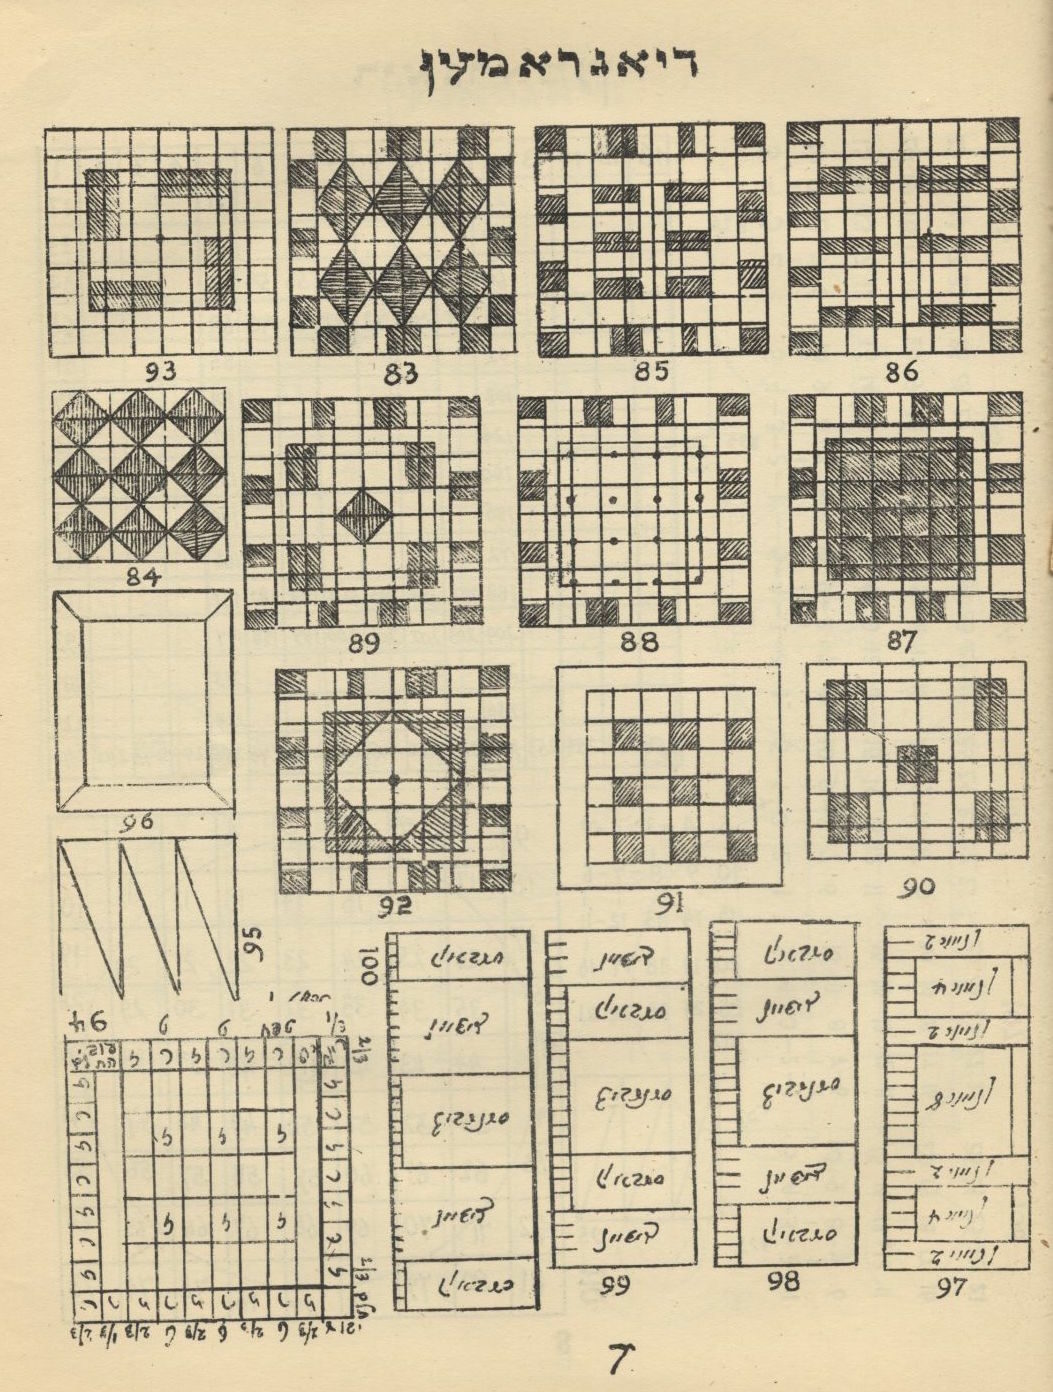 """<p>Illustrations by A. Vayner for Zalkind's Yiddish translation of tractate <em>Kilayim</em> (<span class=""""numbers"""">1932</span>)</p>"""